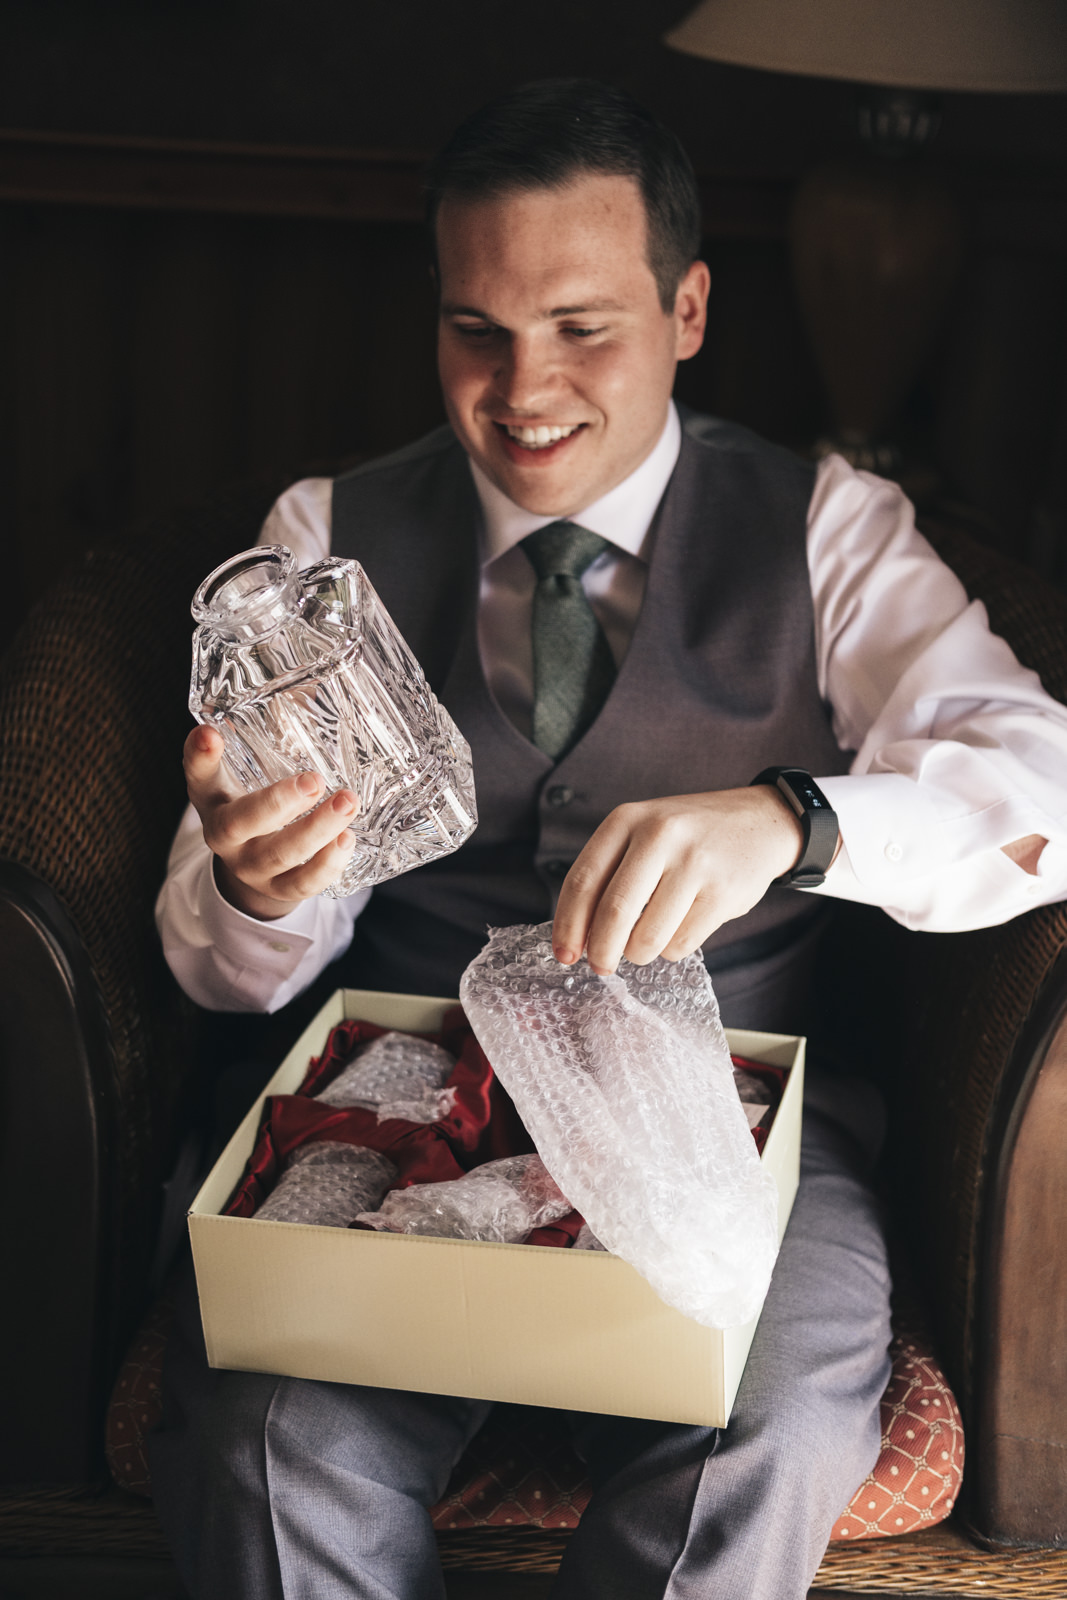 Groom smiles and opens gift from his bride before their wedding ceremony.